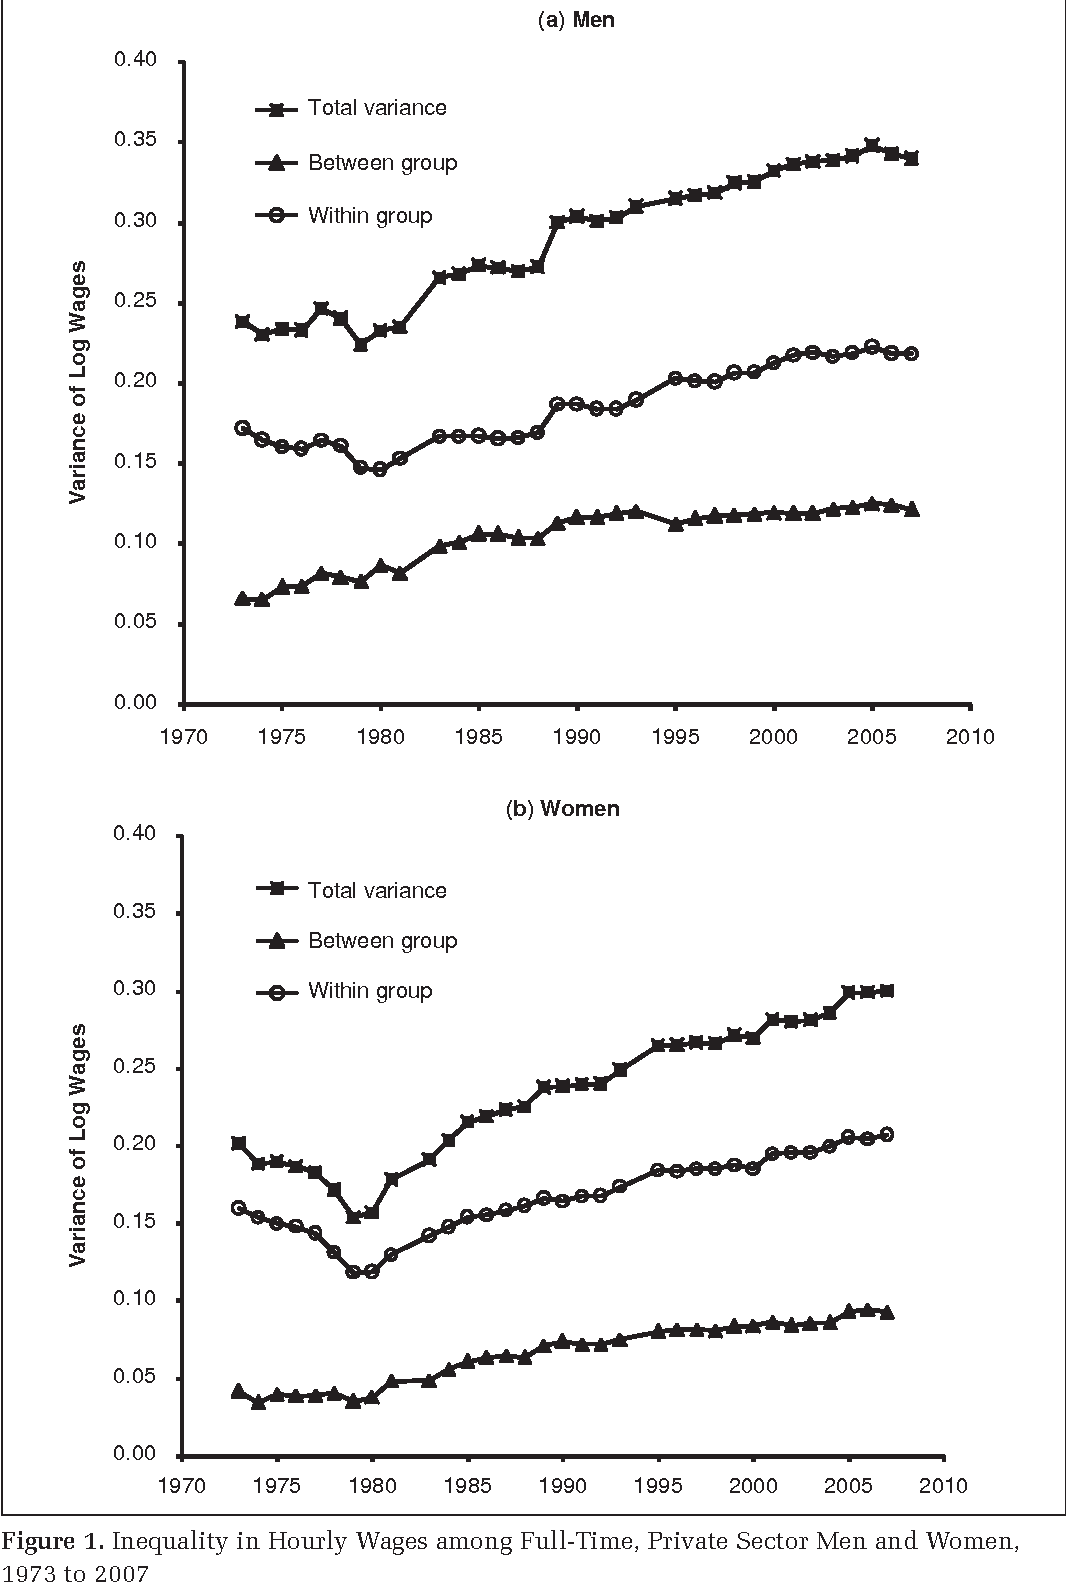 Figure 1. Inequality in Hourly Wages among Full-Time, Private Sector Men and Women, 1973 to 2007 Note: Figures are calculated from the May and Merged Outgoing Rotation Group files of the CPS.